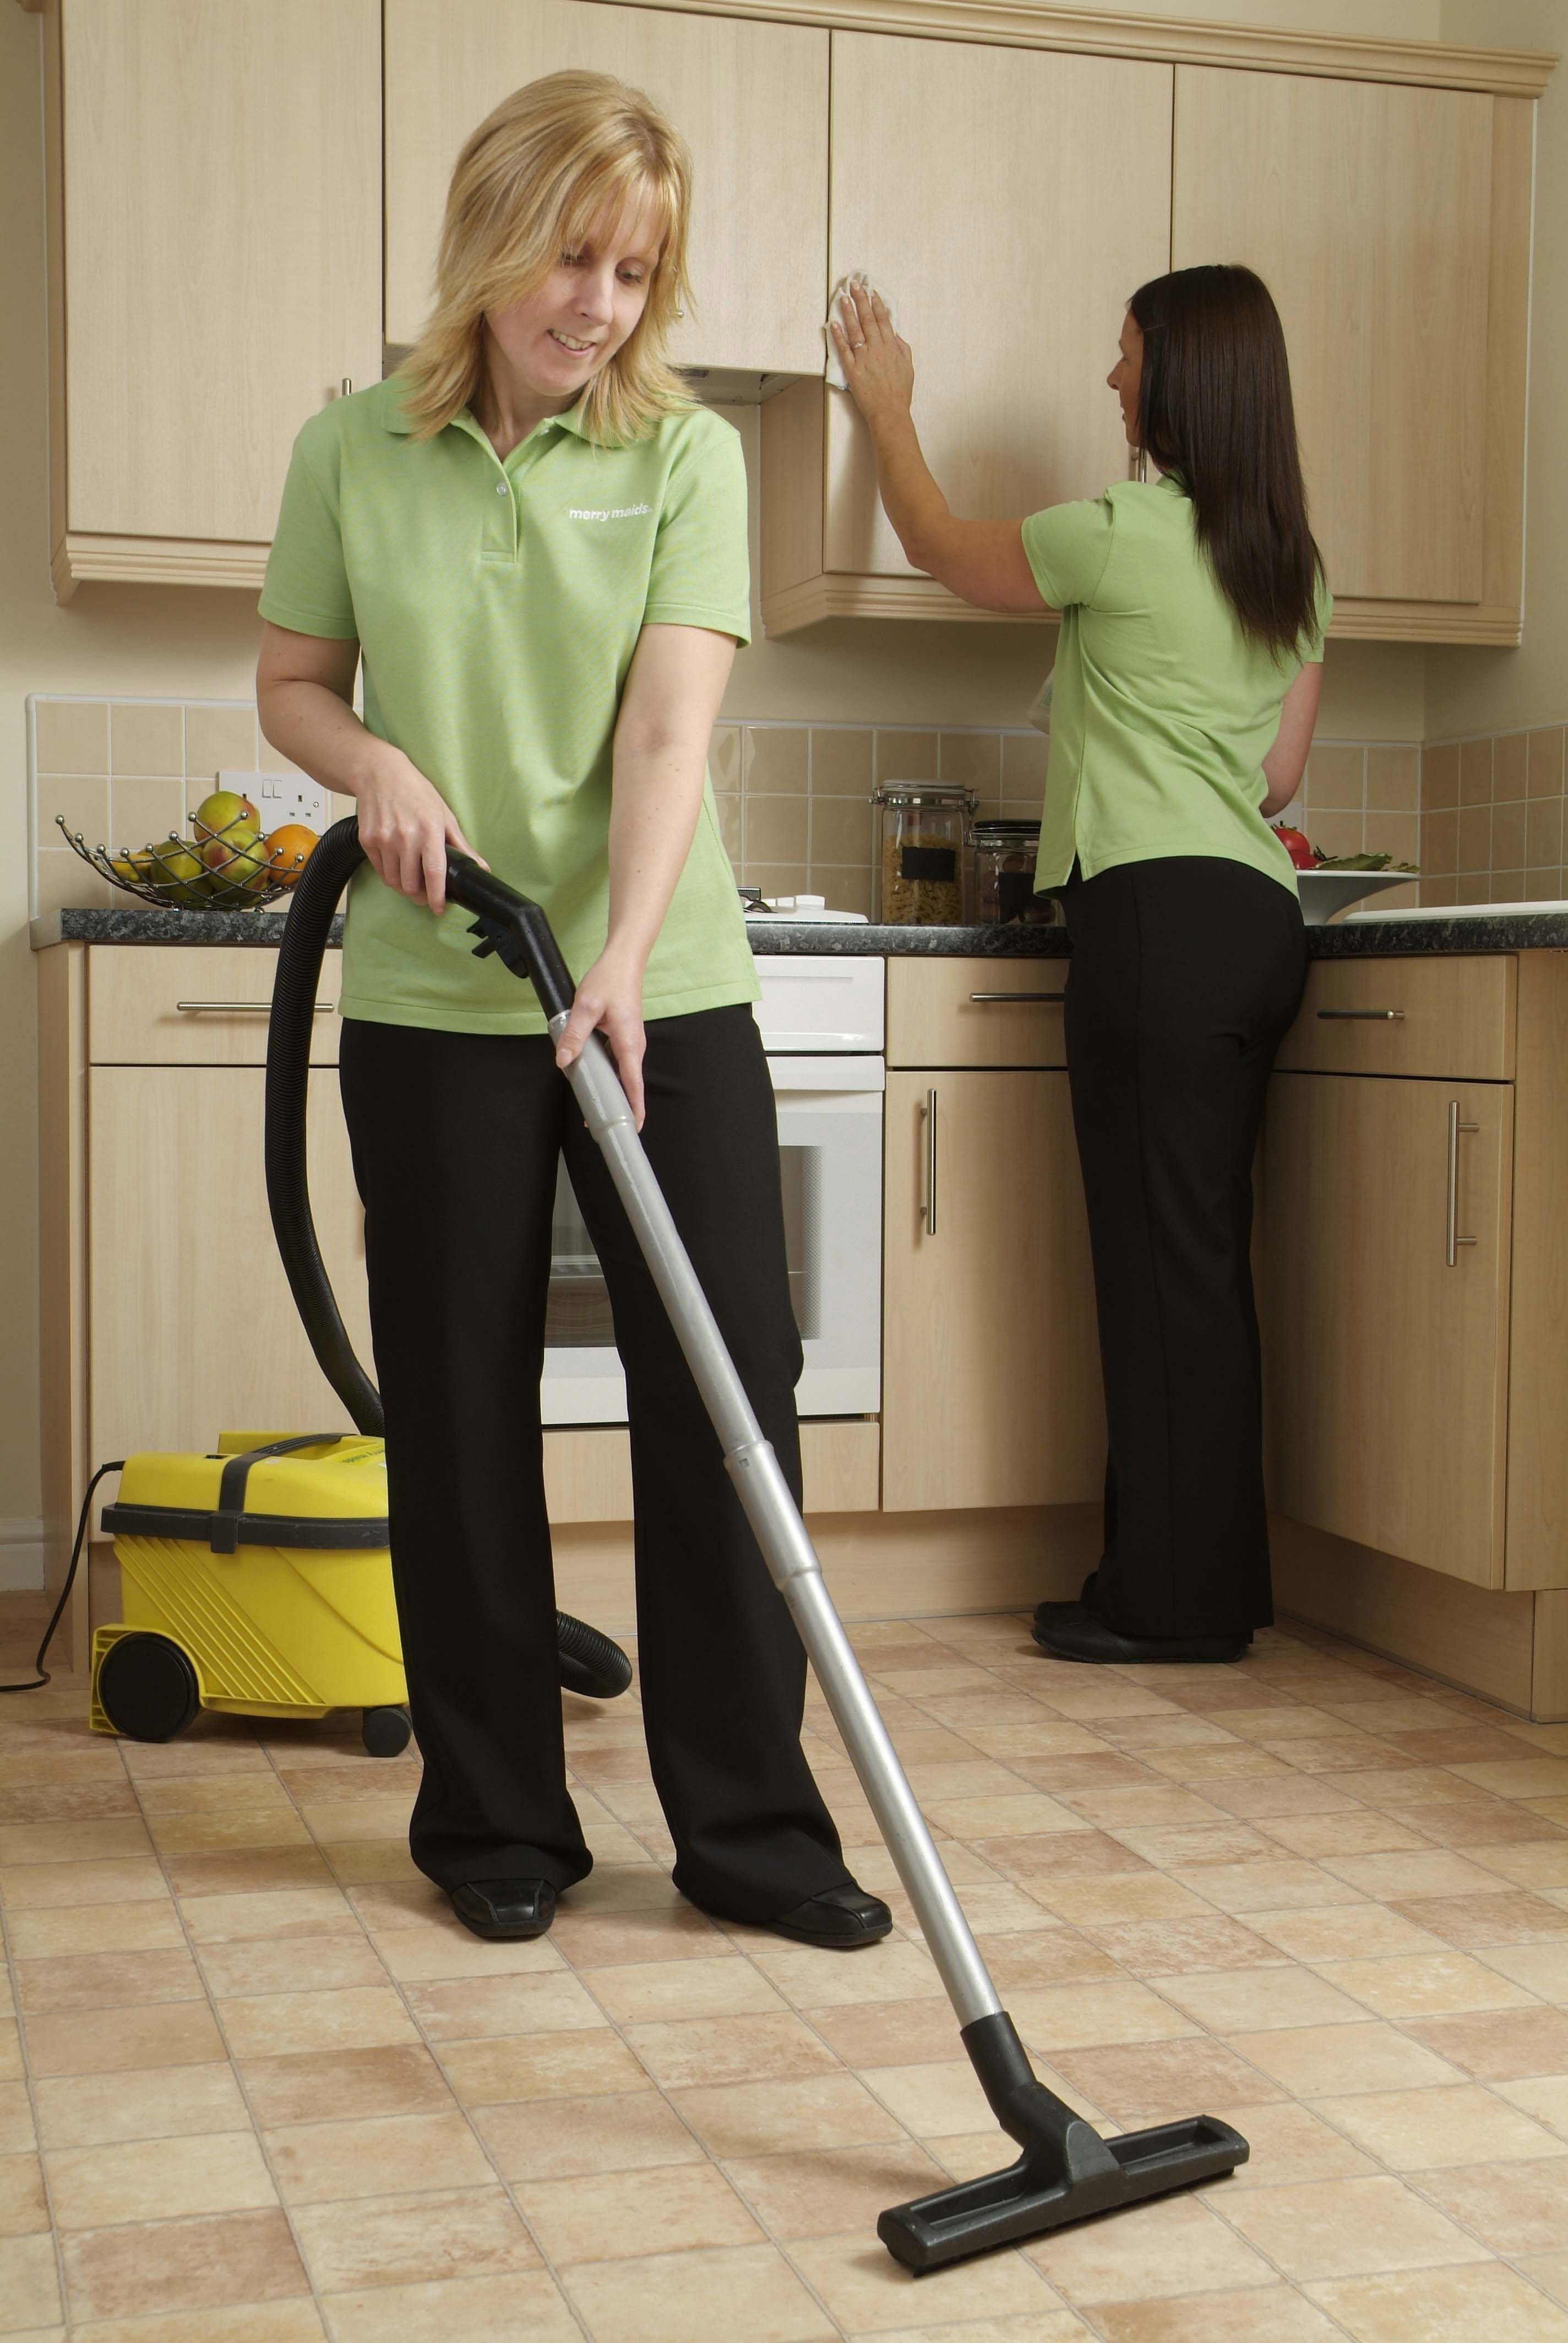 Full time maids housekeeping cleaners required at